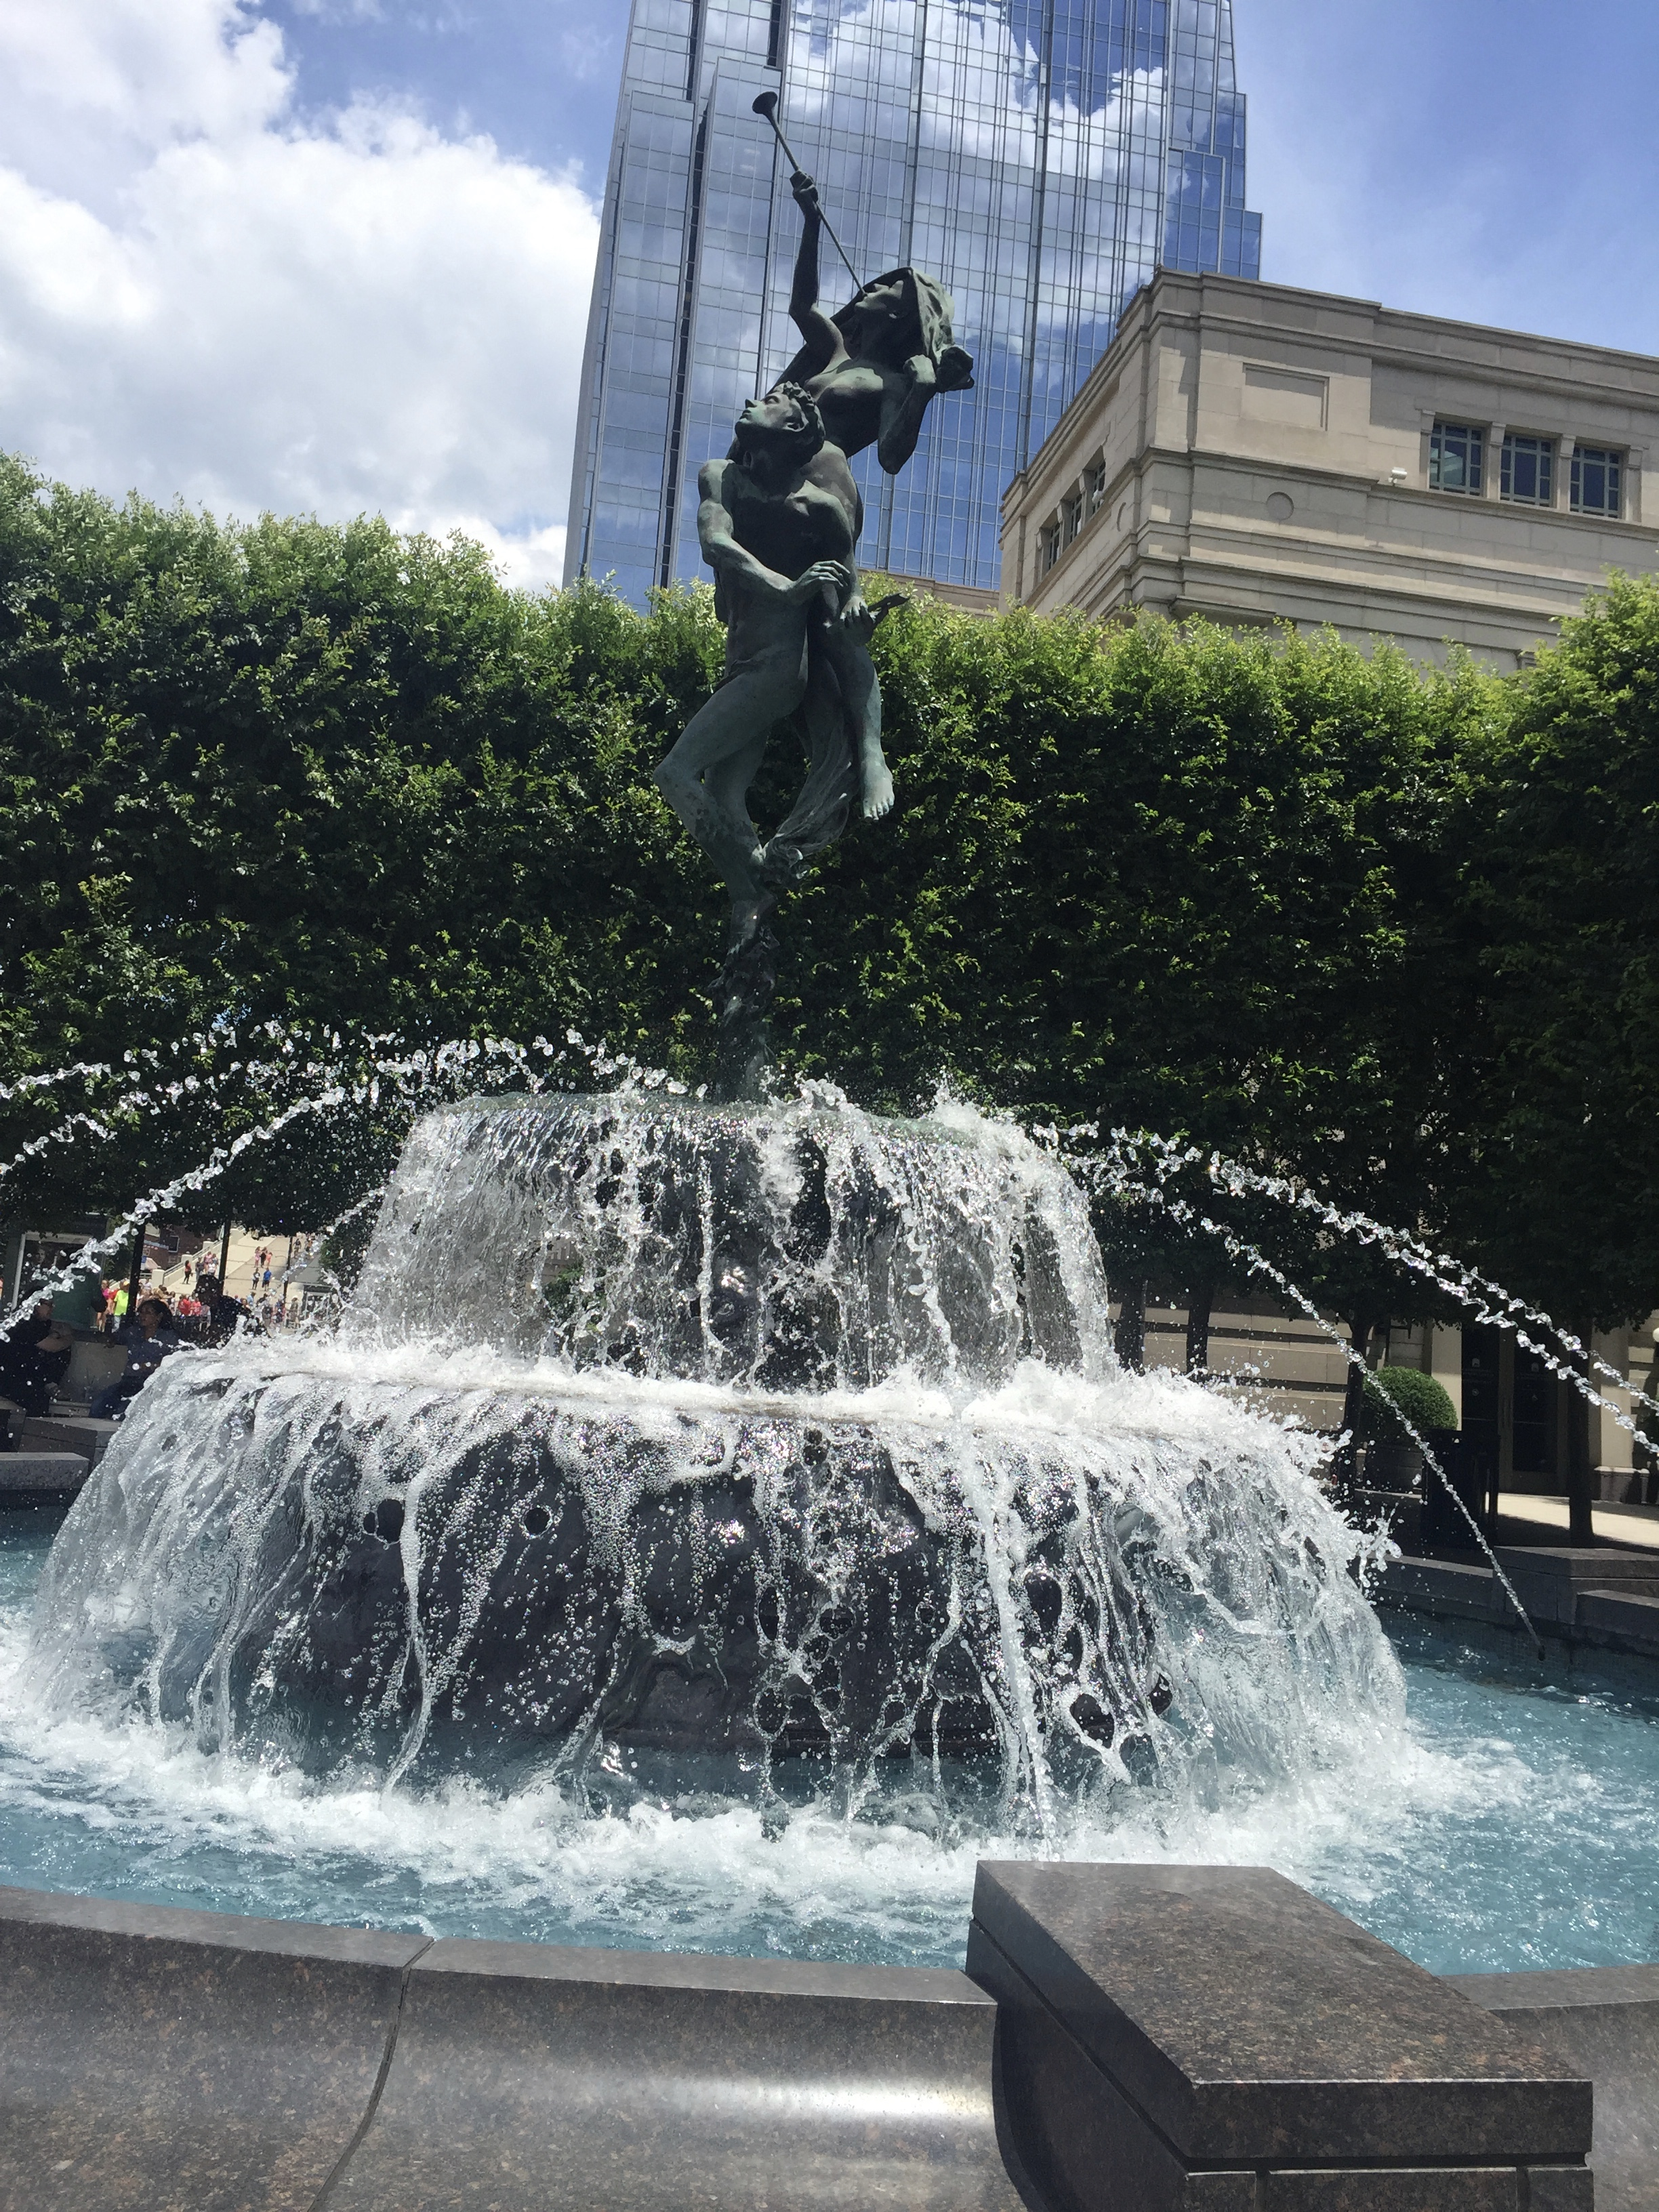 Whimsical statue and water fountain in downtown Nashville. Photo by Melody Pittman